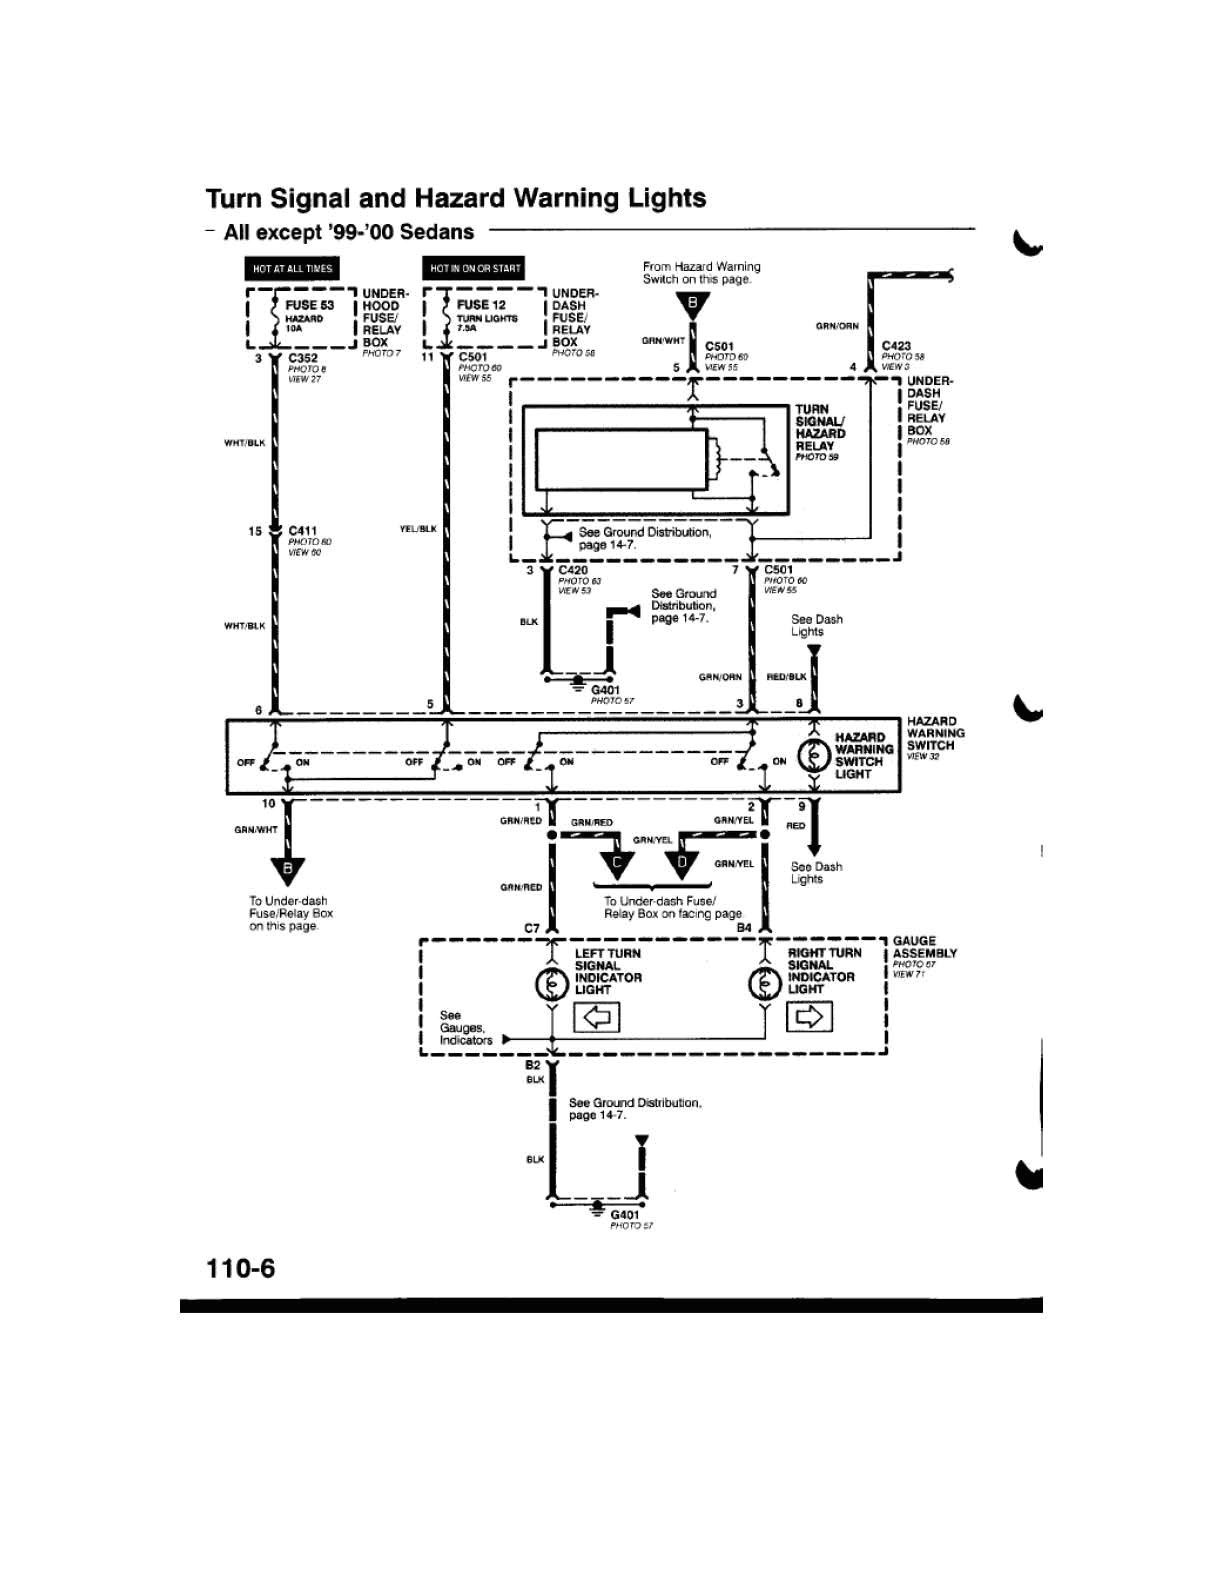 signal light flasher wiring diagram unique turn signal wiring diagram lovely jcb 3 0d 4